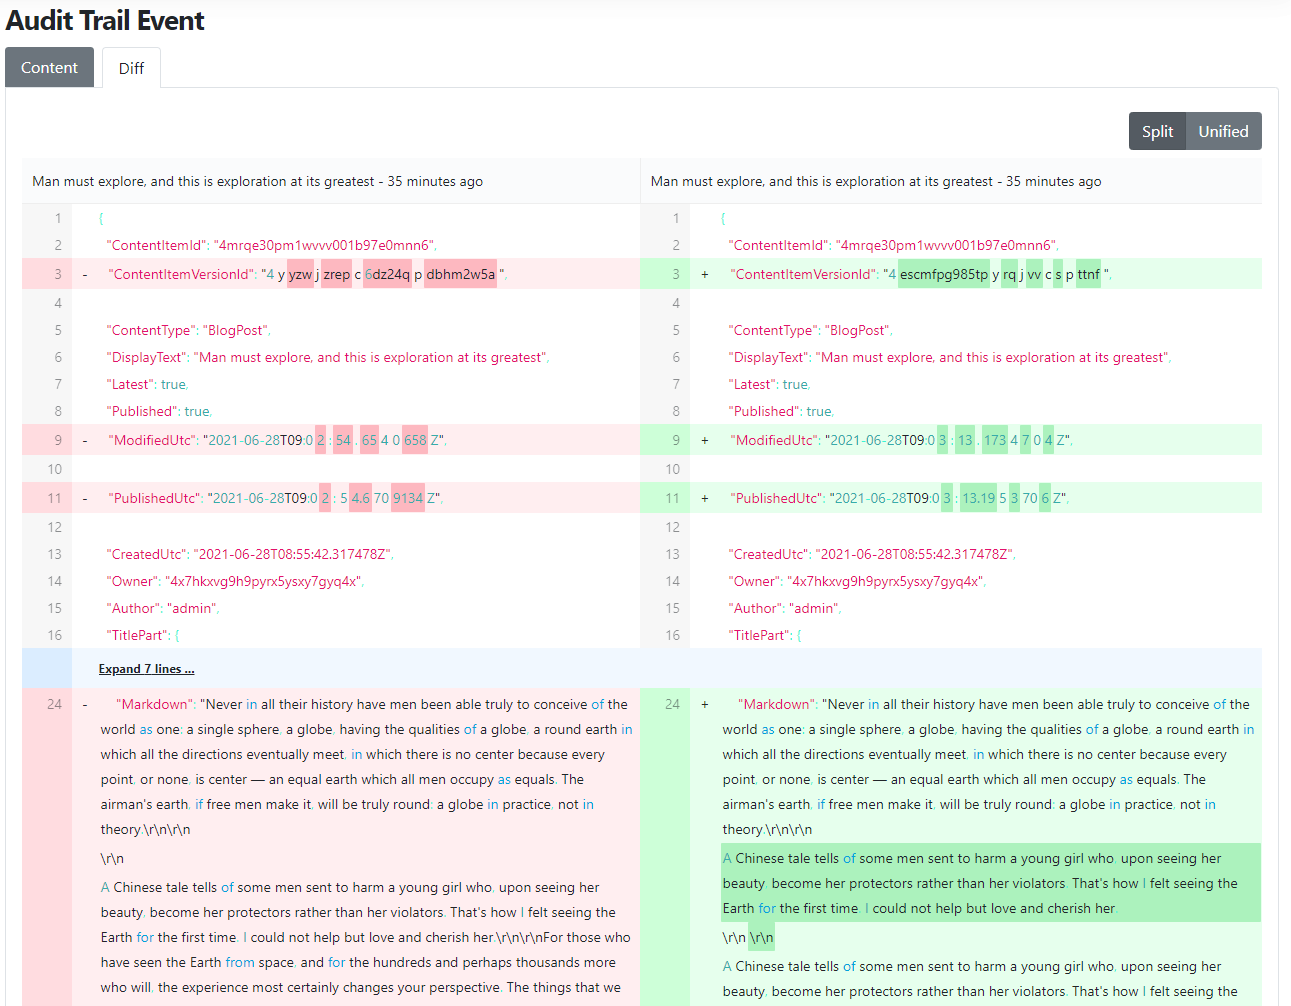 The diff view of an Audit Trail content event